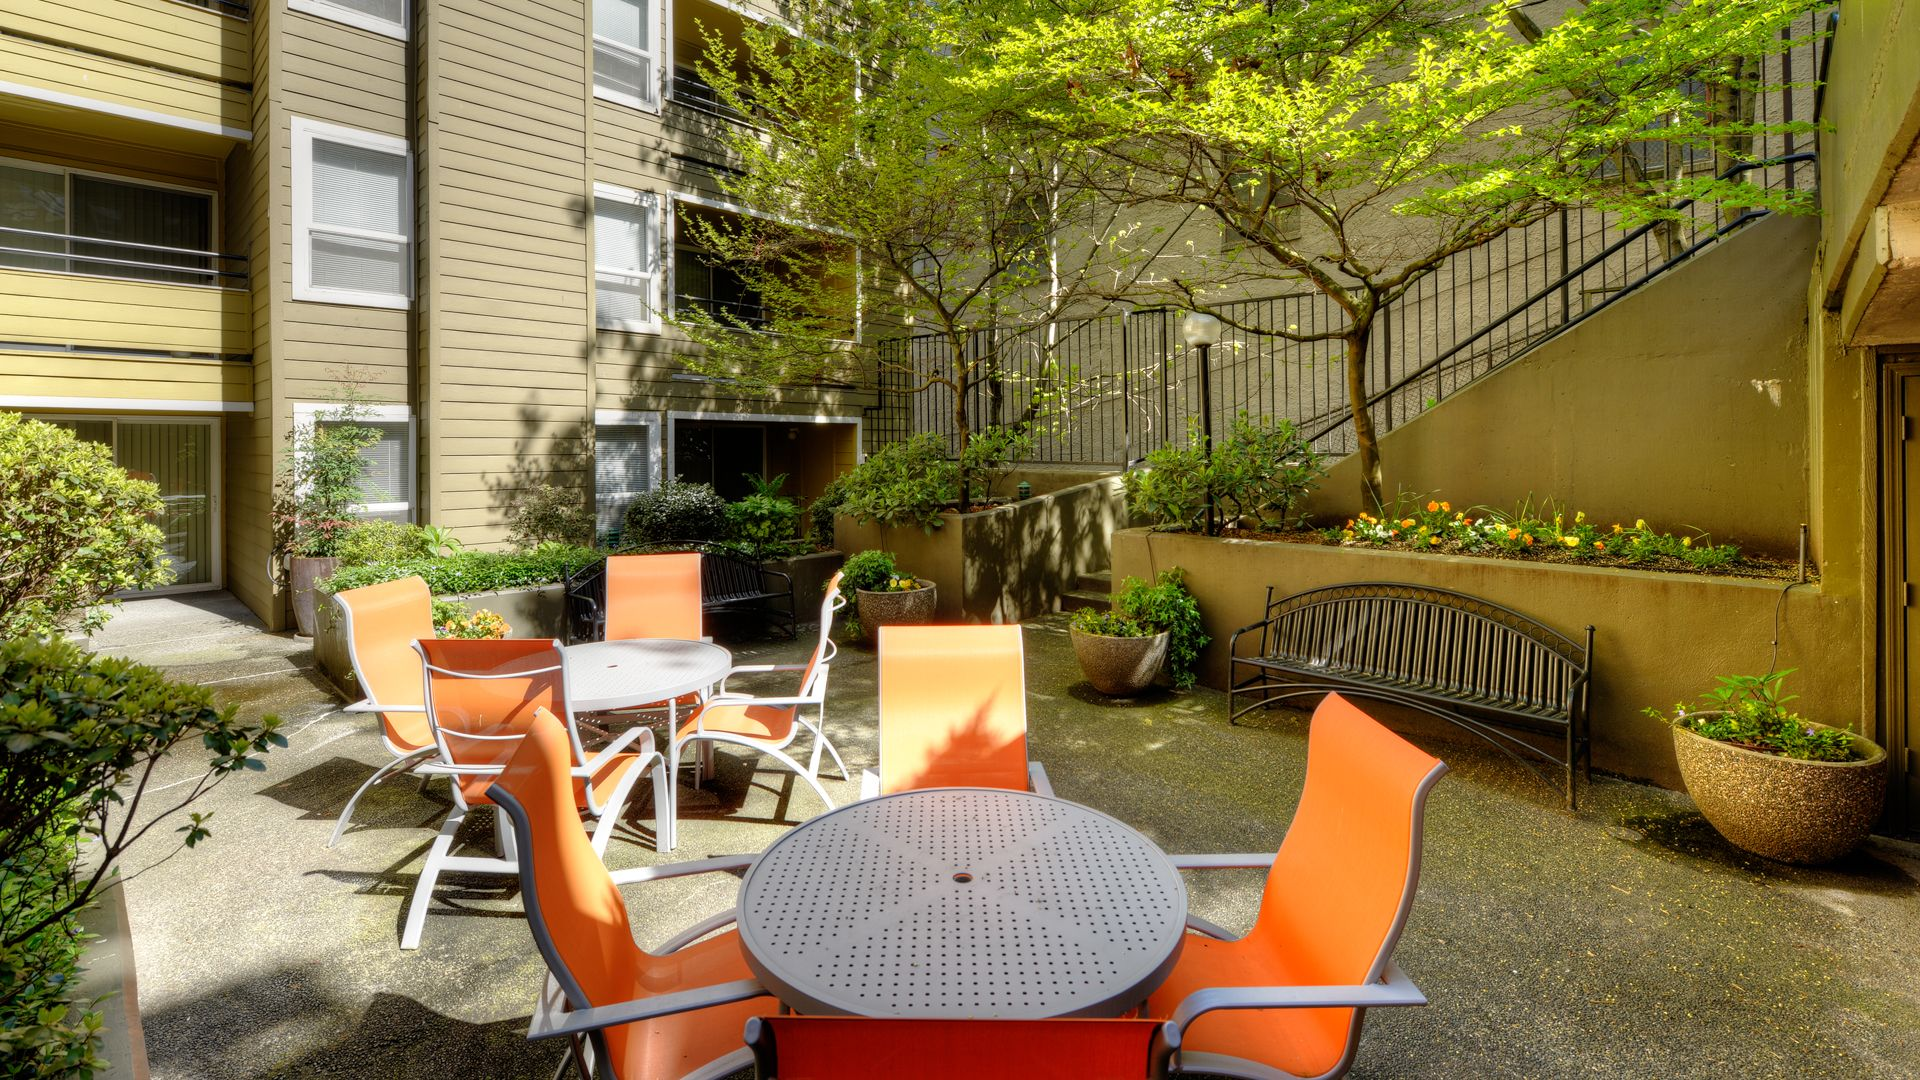 Seventh and James - Outdoor Courtyard